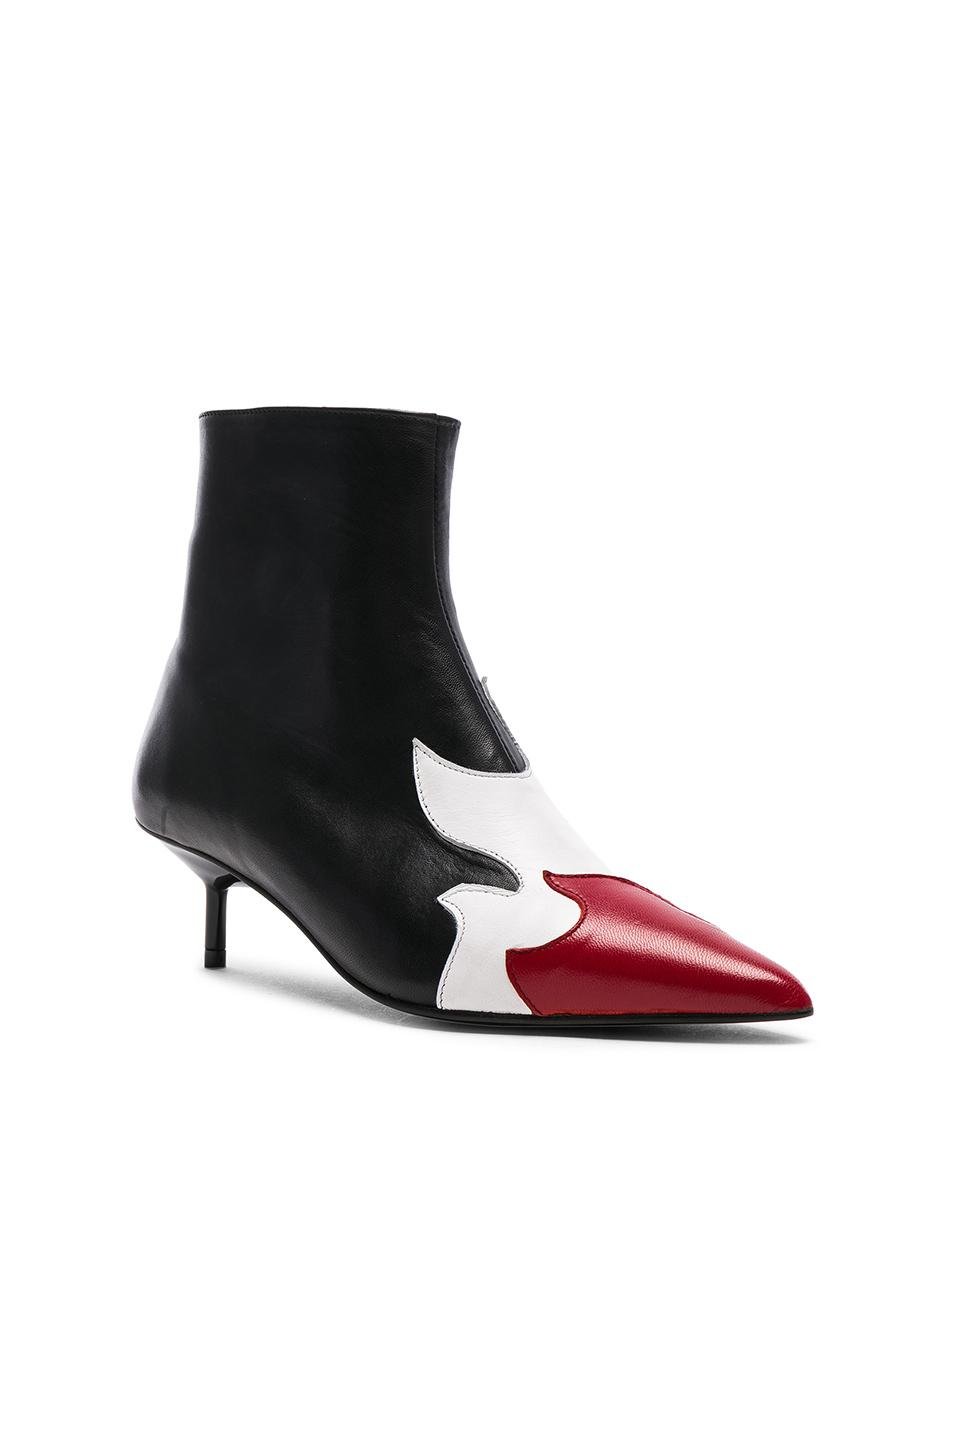 Free Shipping Collections Cheap Price MARQUES'ALMEIDA Pointy Kitten Heel Flame Boot in & Online Store Clearance Websites New Online Zlbsju